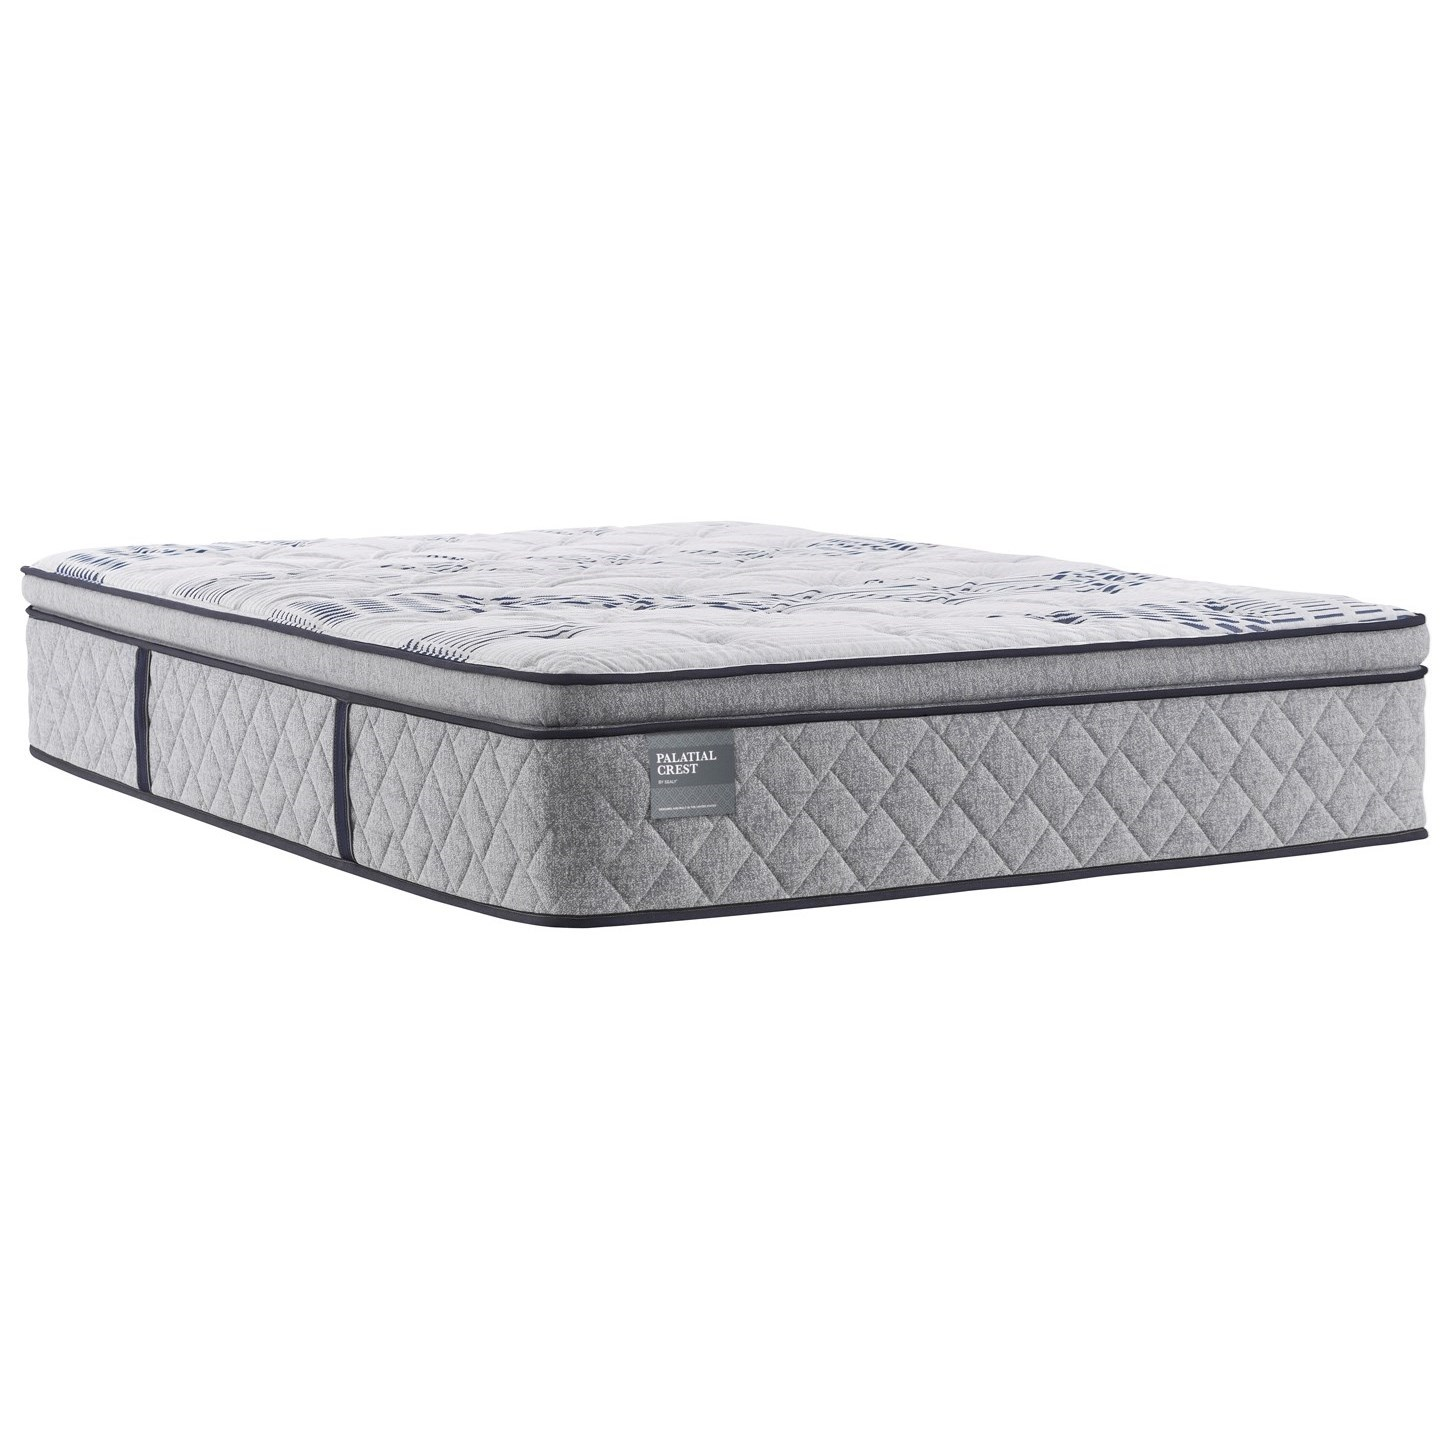 "Surrey Lane Twin 15"" Plush PT Mattress by Sealy at Morris Home"